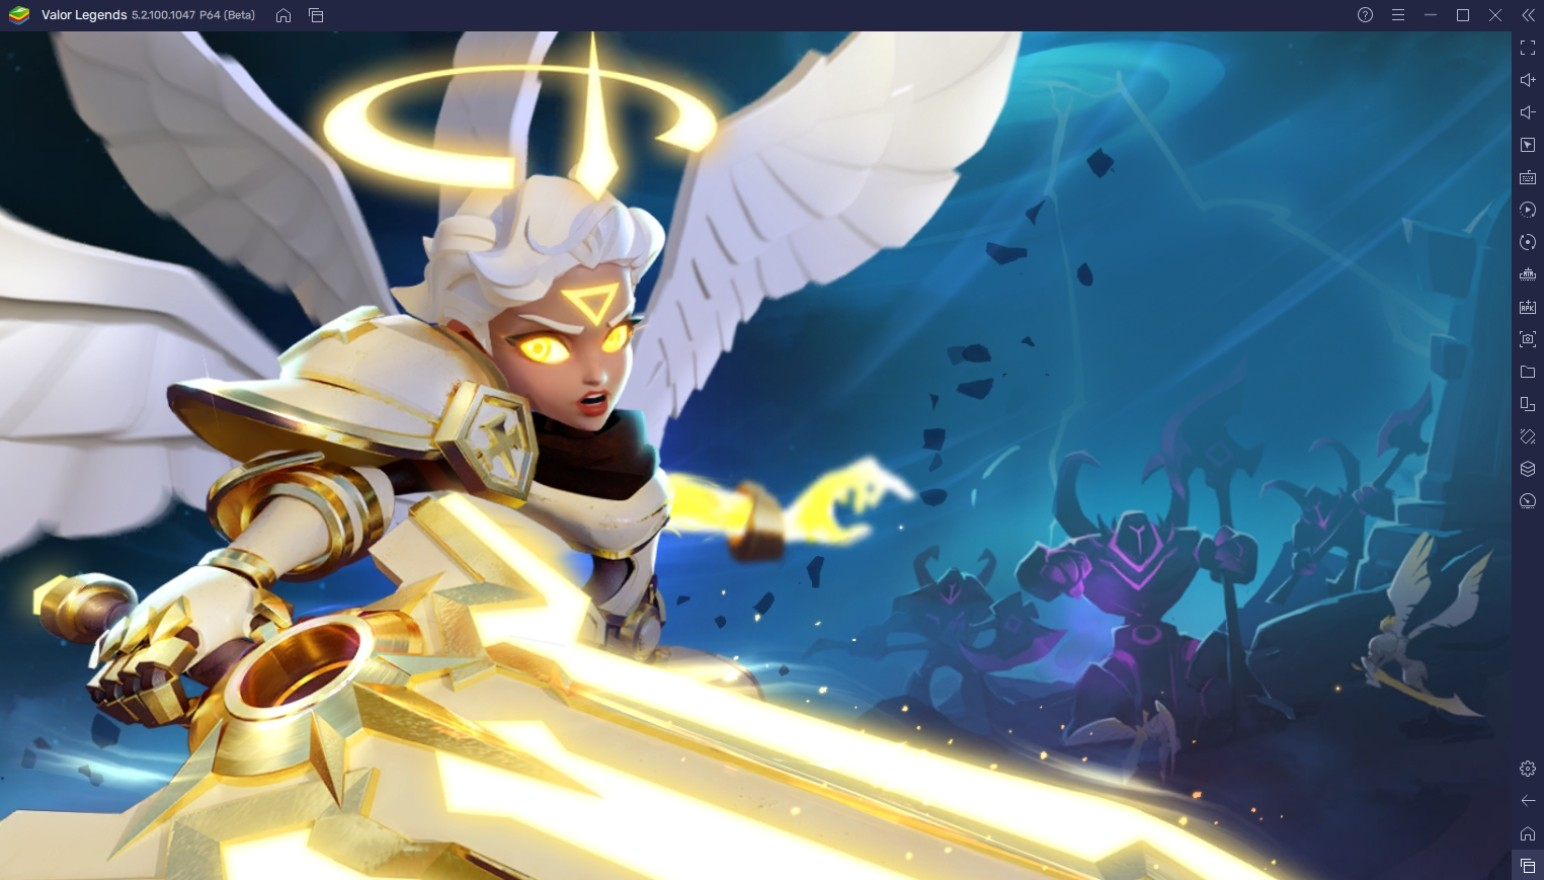 How to Play Valor Legends: Eternity on PC with BlueStacks